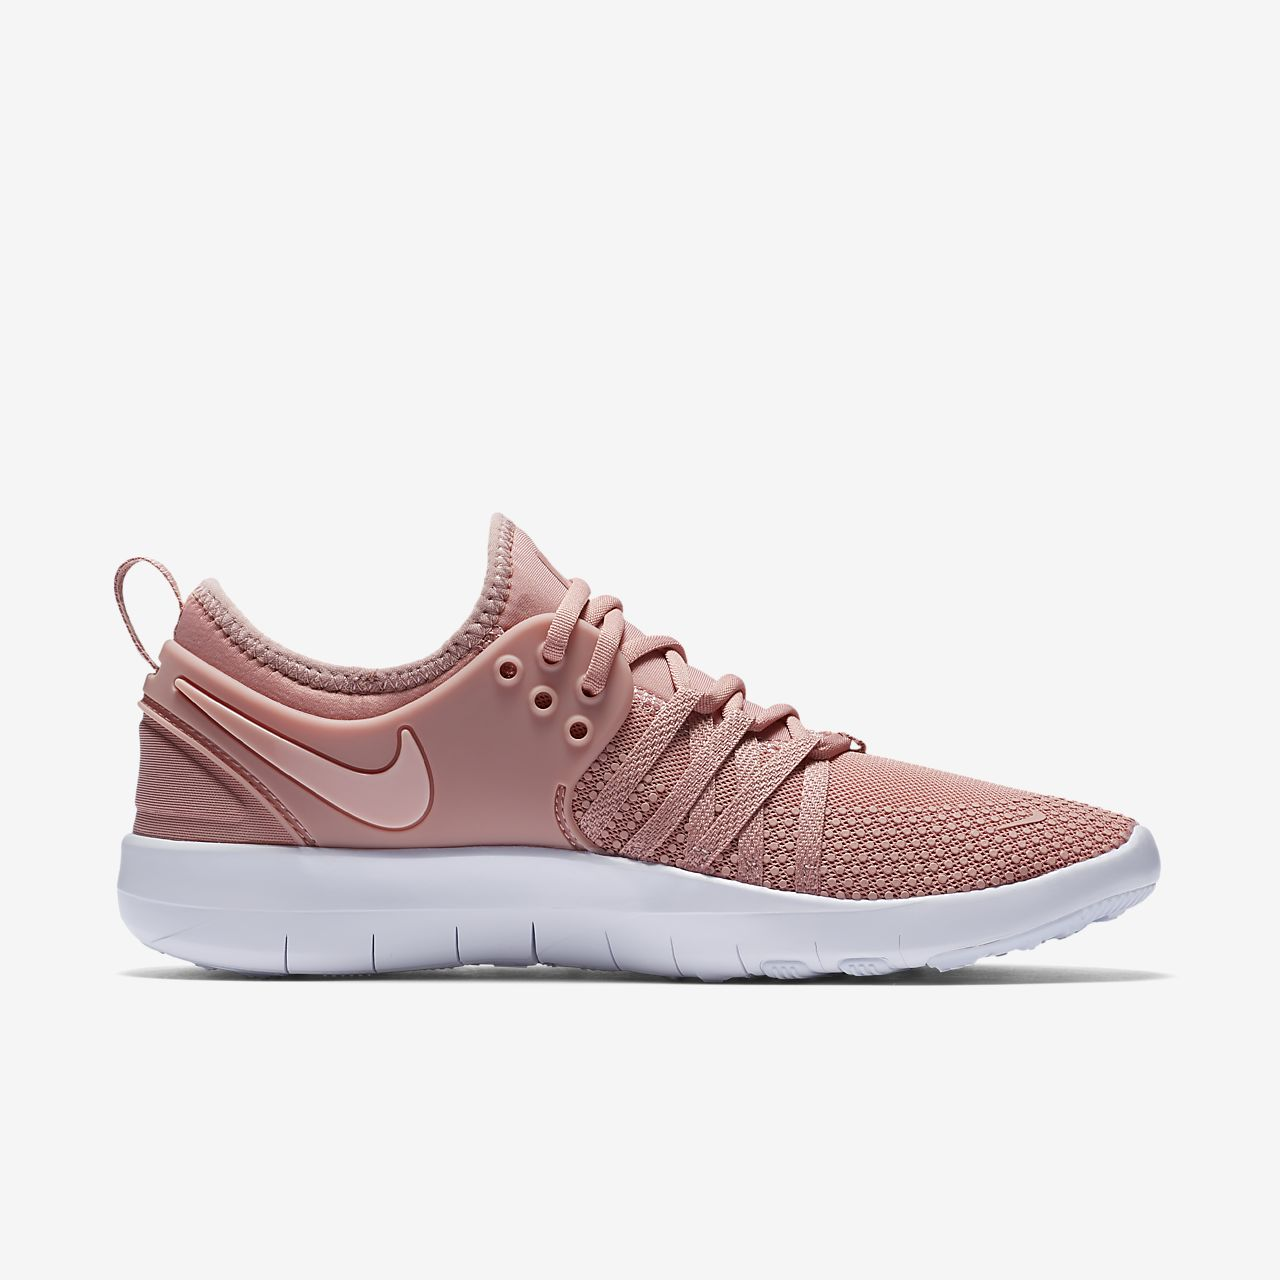 nike shoes gym women selfies 856835